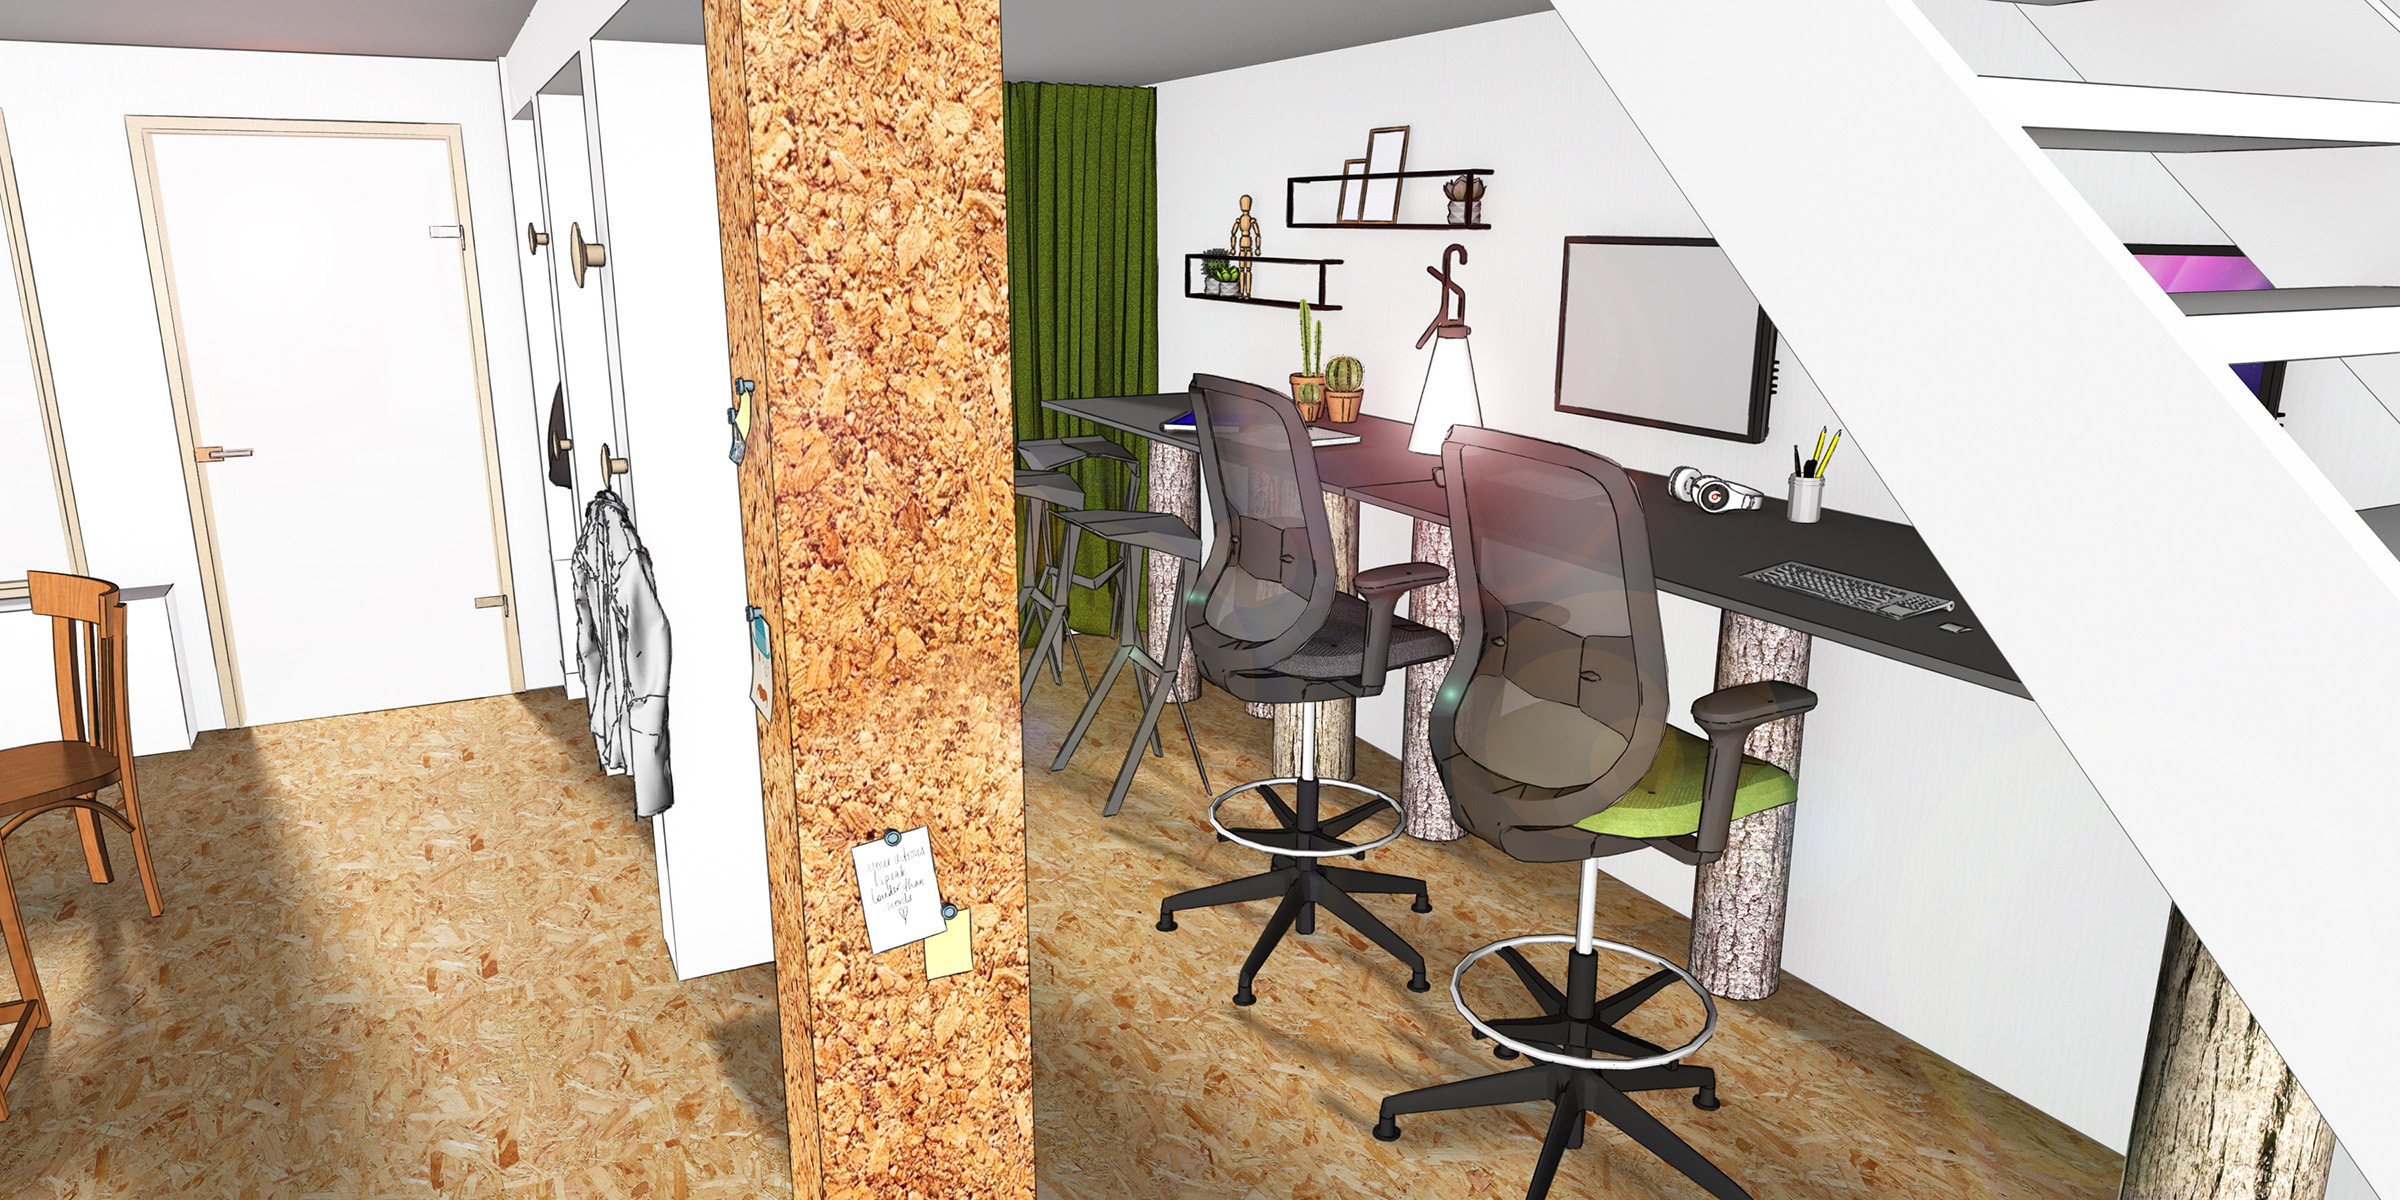 Innenarchitektur Coworking Space Büo Design Entwurf Rendering